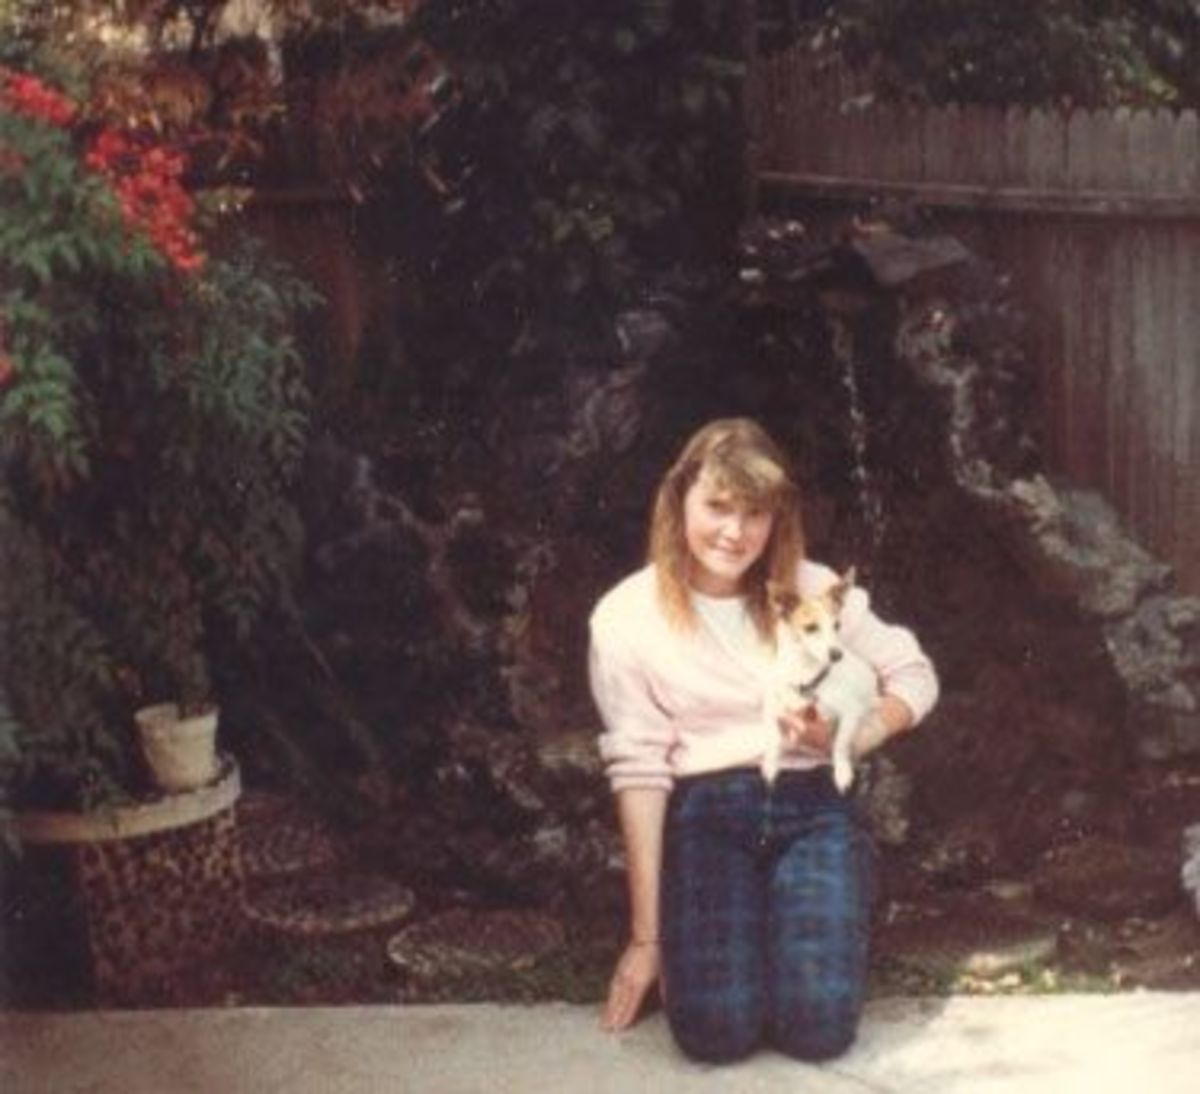 I'm not sure where this was taken, probably next door. Once again, Sarah is holding an animal.